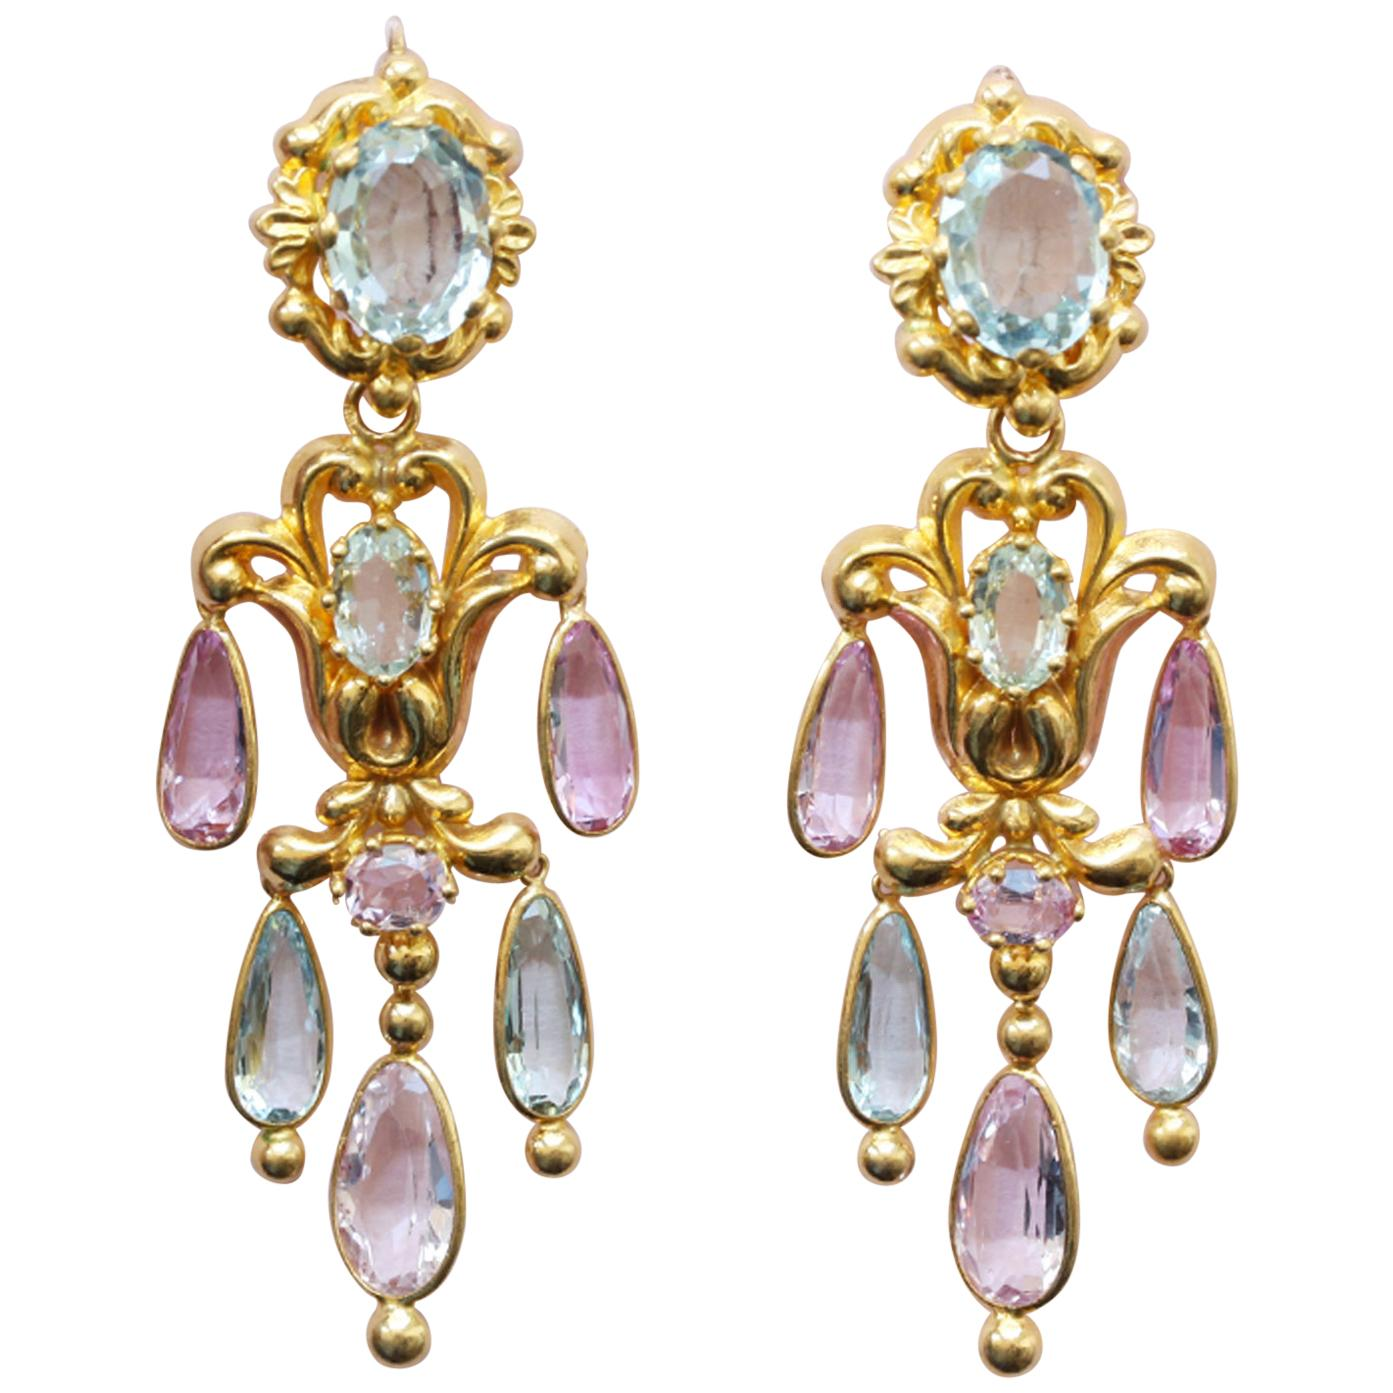 A pair of 19th-century aquamarine and pink topaz girandole earrings offered by Kunsthandel Inez Stodel